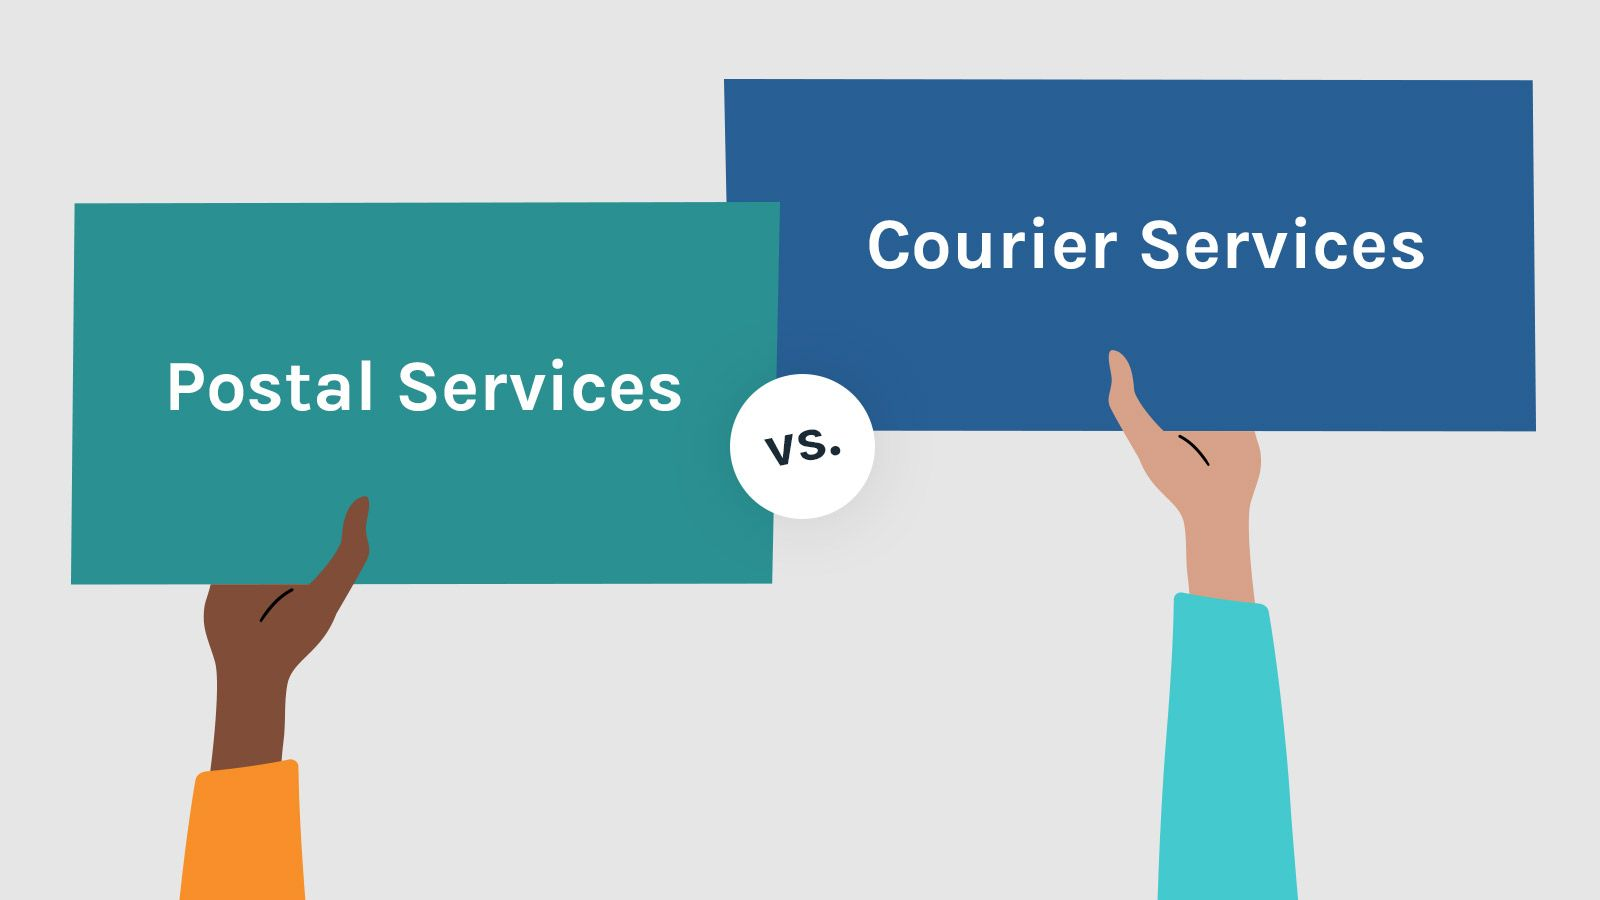 Courier Services vs Postal Services - Understanding the difference